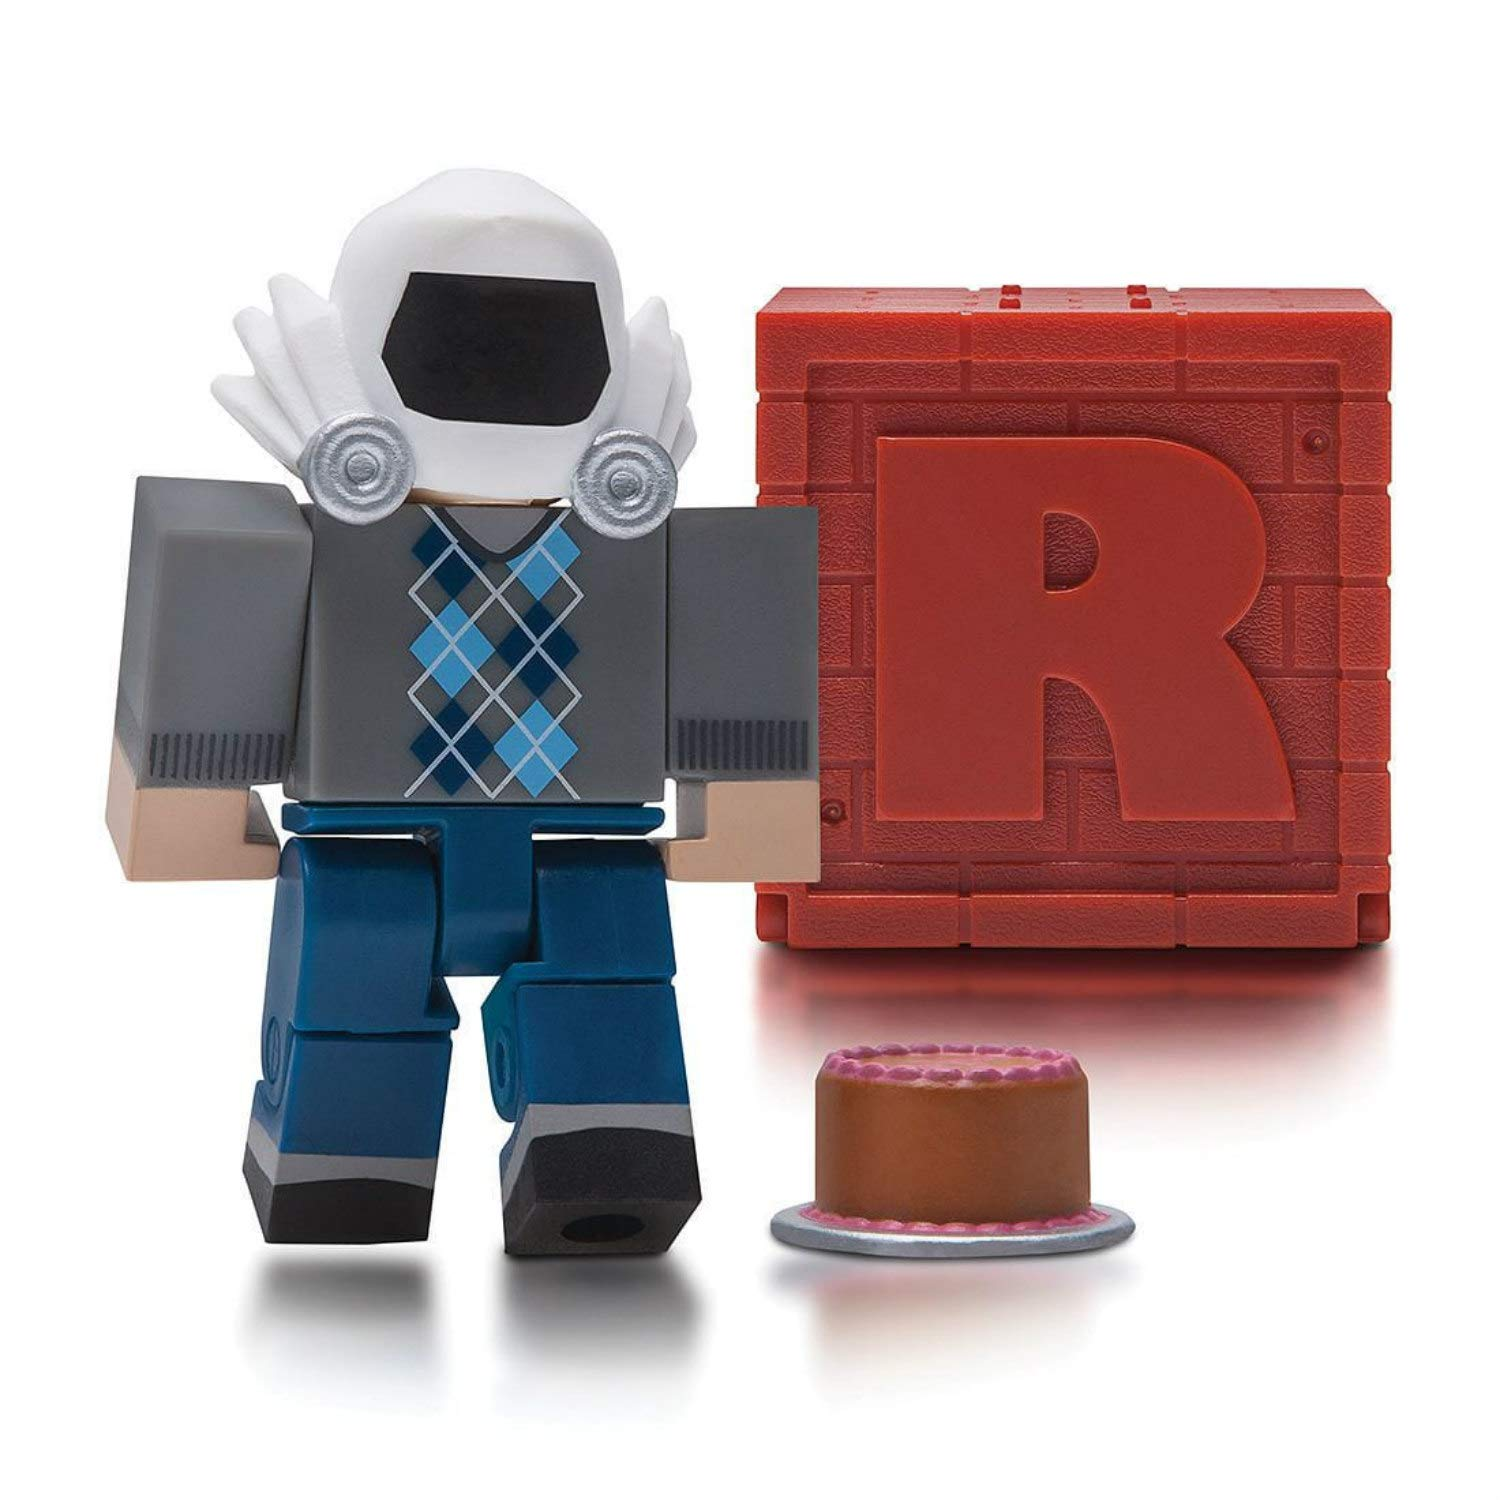 Roblox Series 4 - Galleon Roblox Series 4 Tomarty Action Figure Mystery Box